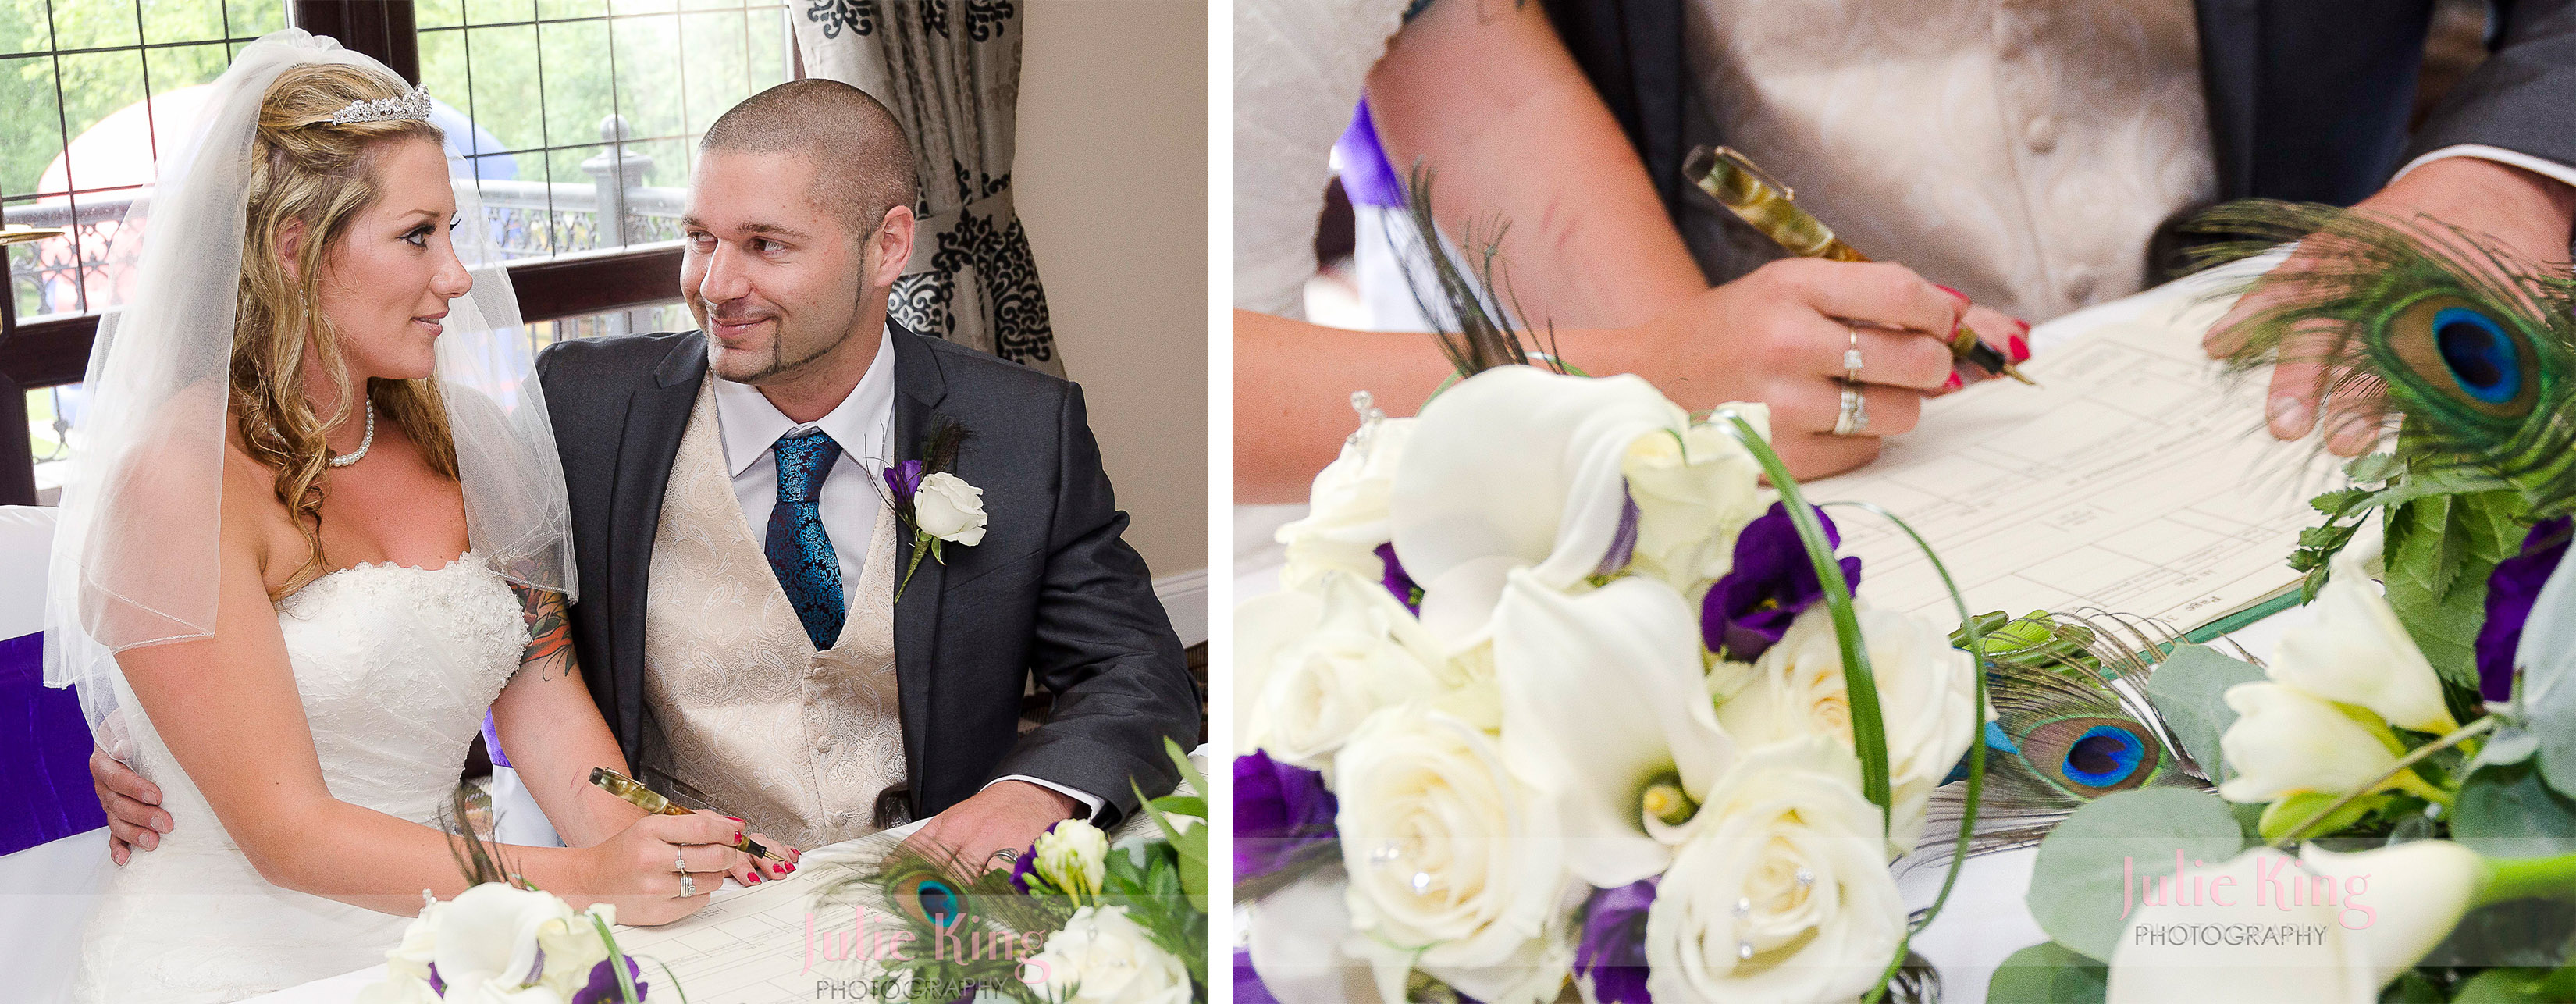 Wedding Photography at The Pear Tree Inn & Country Hotel, Smite, Worcester.